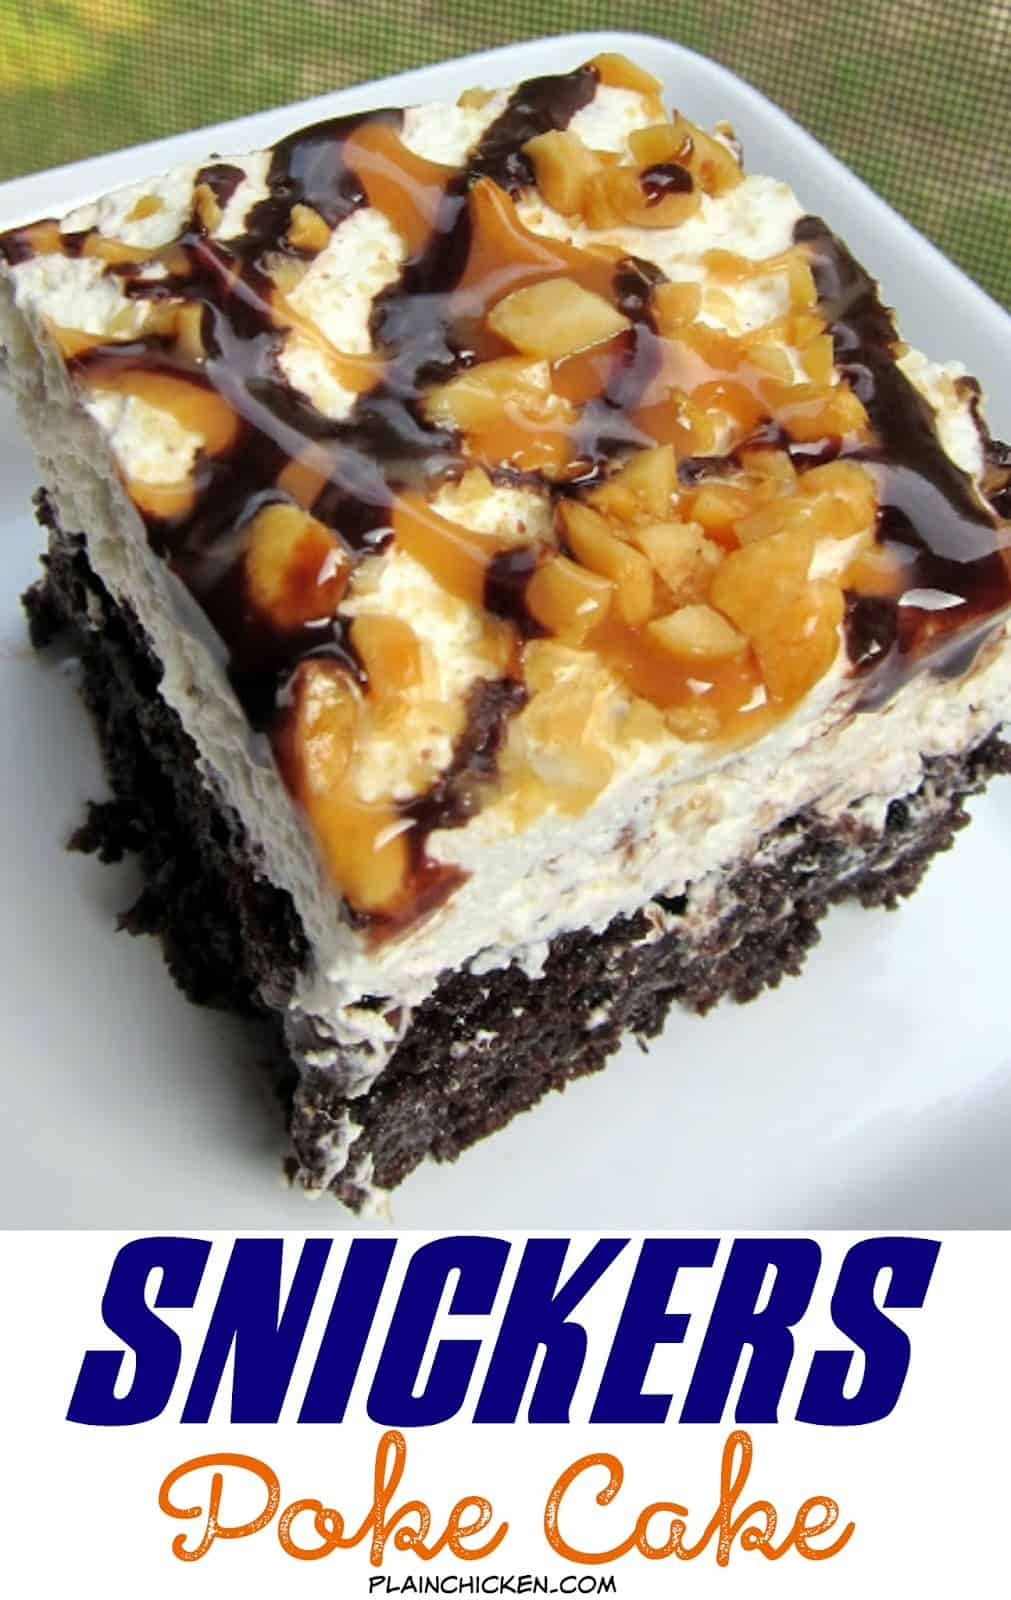 Snickers Poke Cake Recipe - chocolate cake, caramel, whipped cream, peanuts and chocolate sauce - OMG! There is NEVER any left! People go nuts over this cake!!